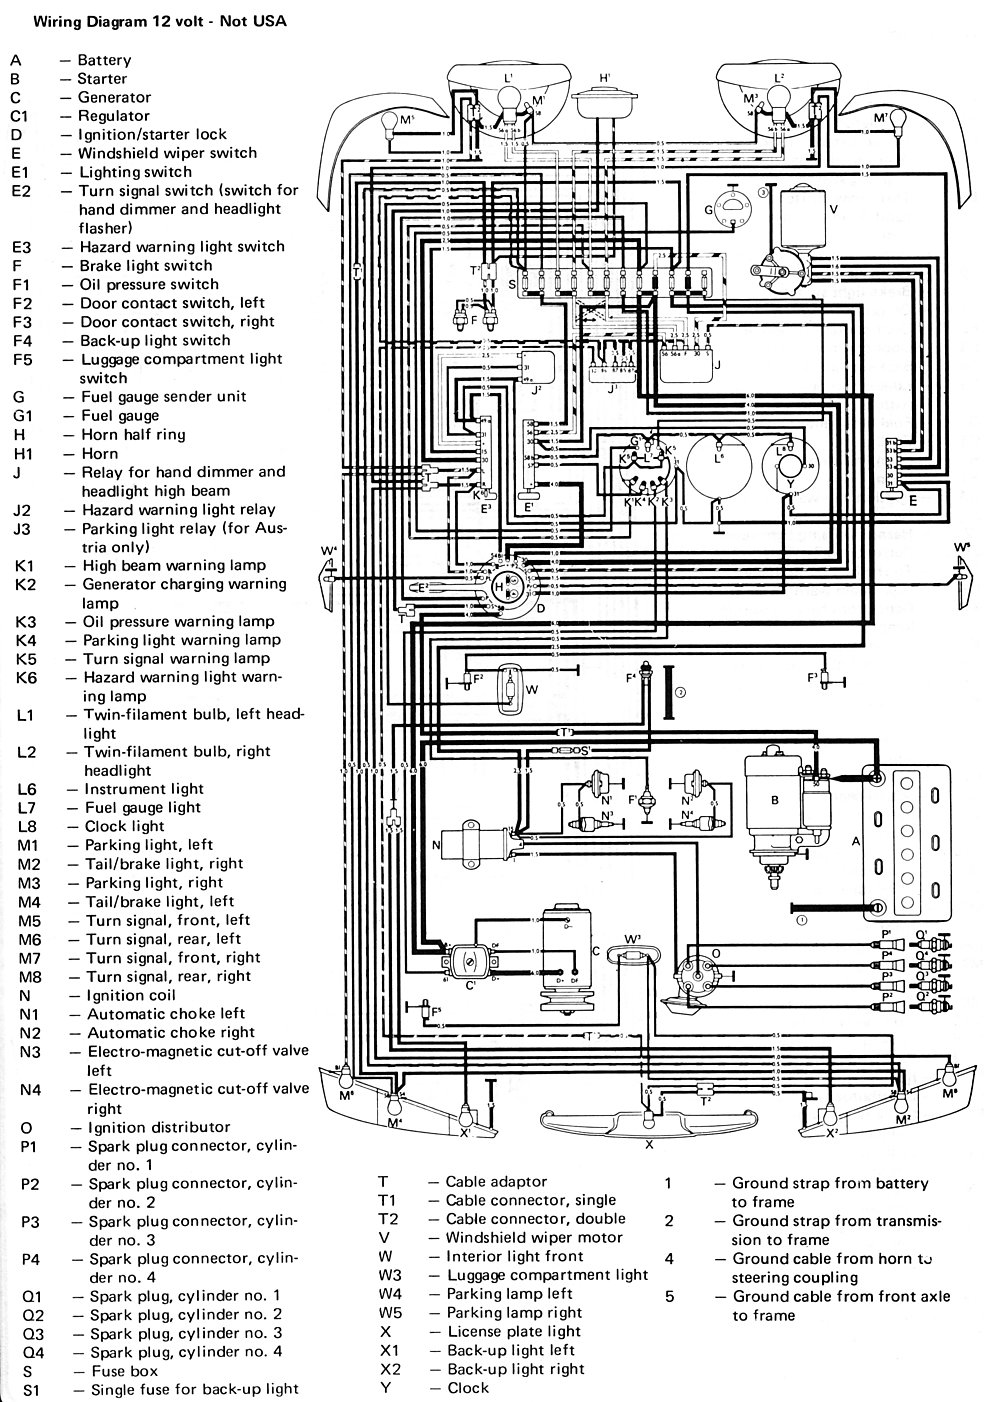 Vw Type 3 Wiring Diagram Diagrams 1973 Volkswagen Thesamba Com View Topic 1967 Voltage Regulator